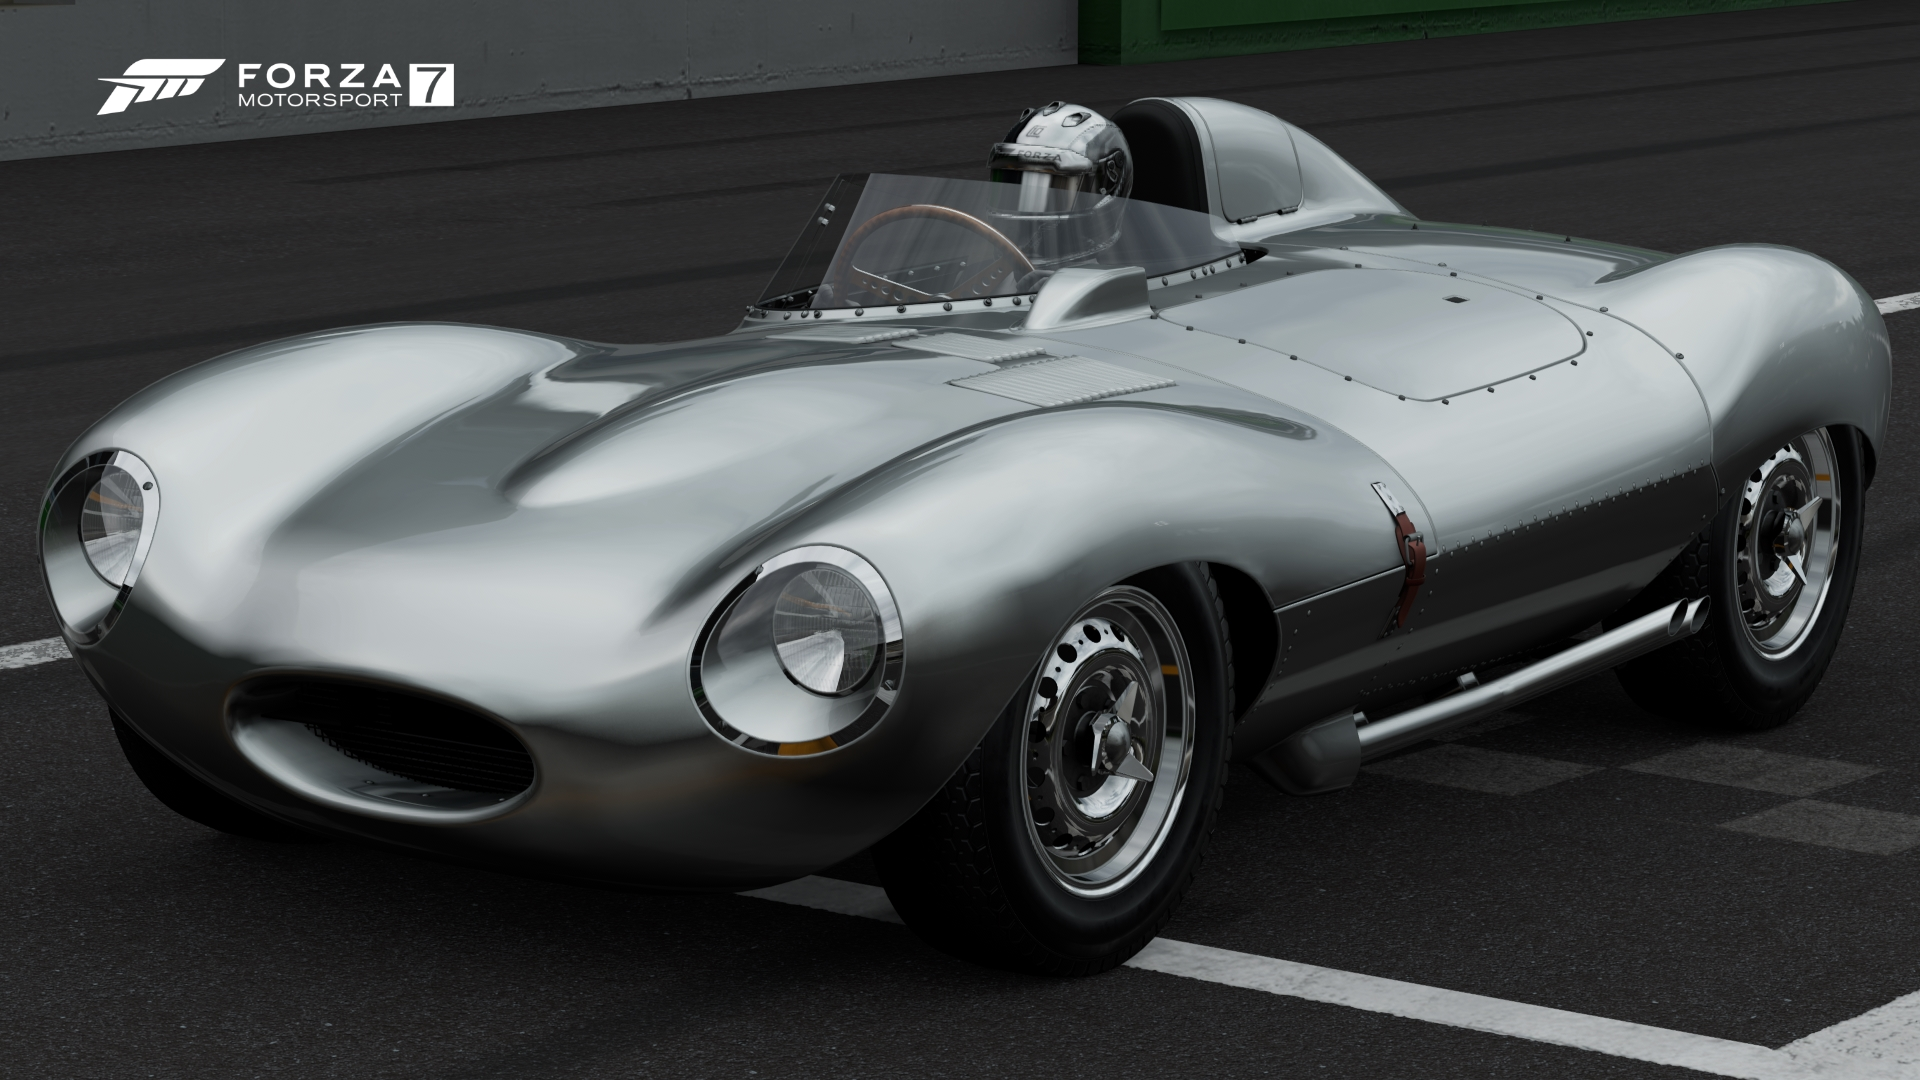 jaguar d type forza motorsport wiki fandom powered by wikia. Black Bedroom Furniture Sets. Home Design Ideas